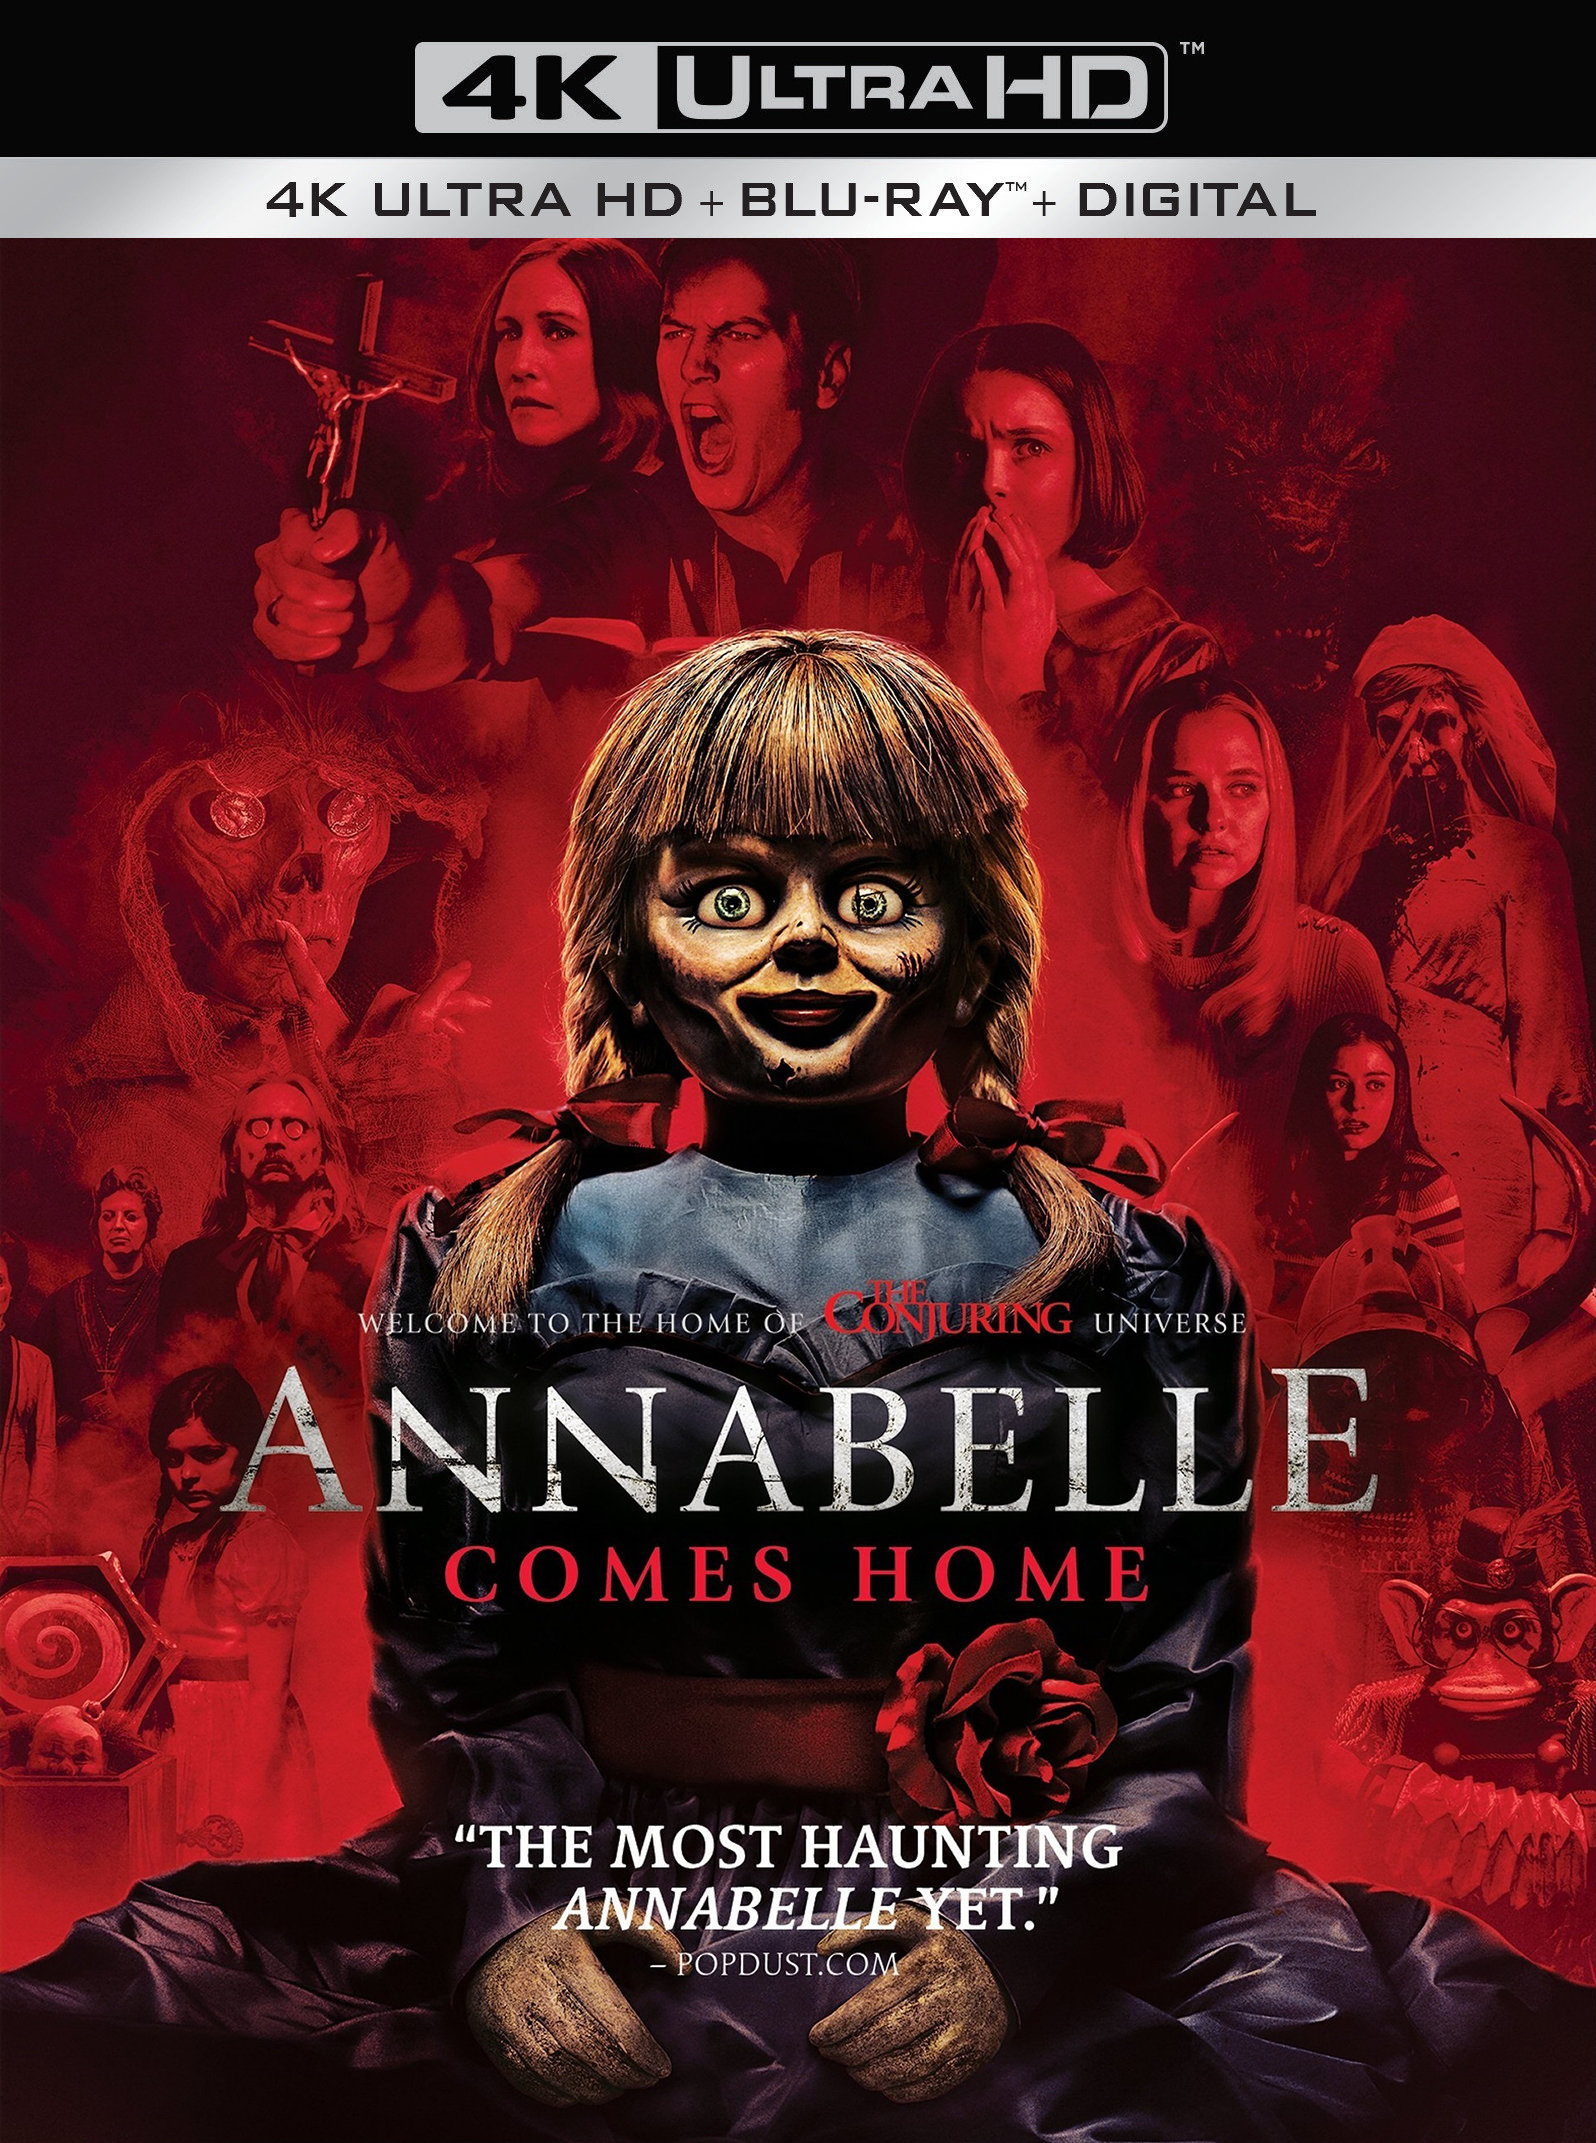 Annabelle Comes Home (2019) poster image